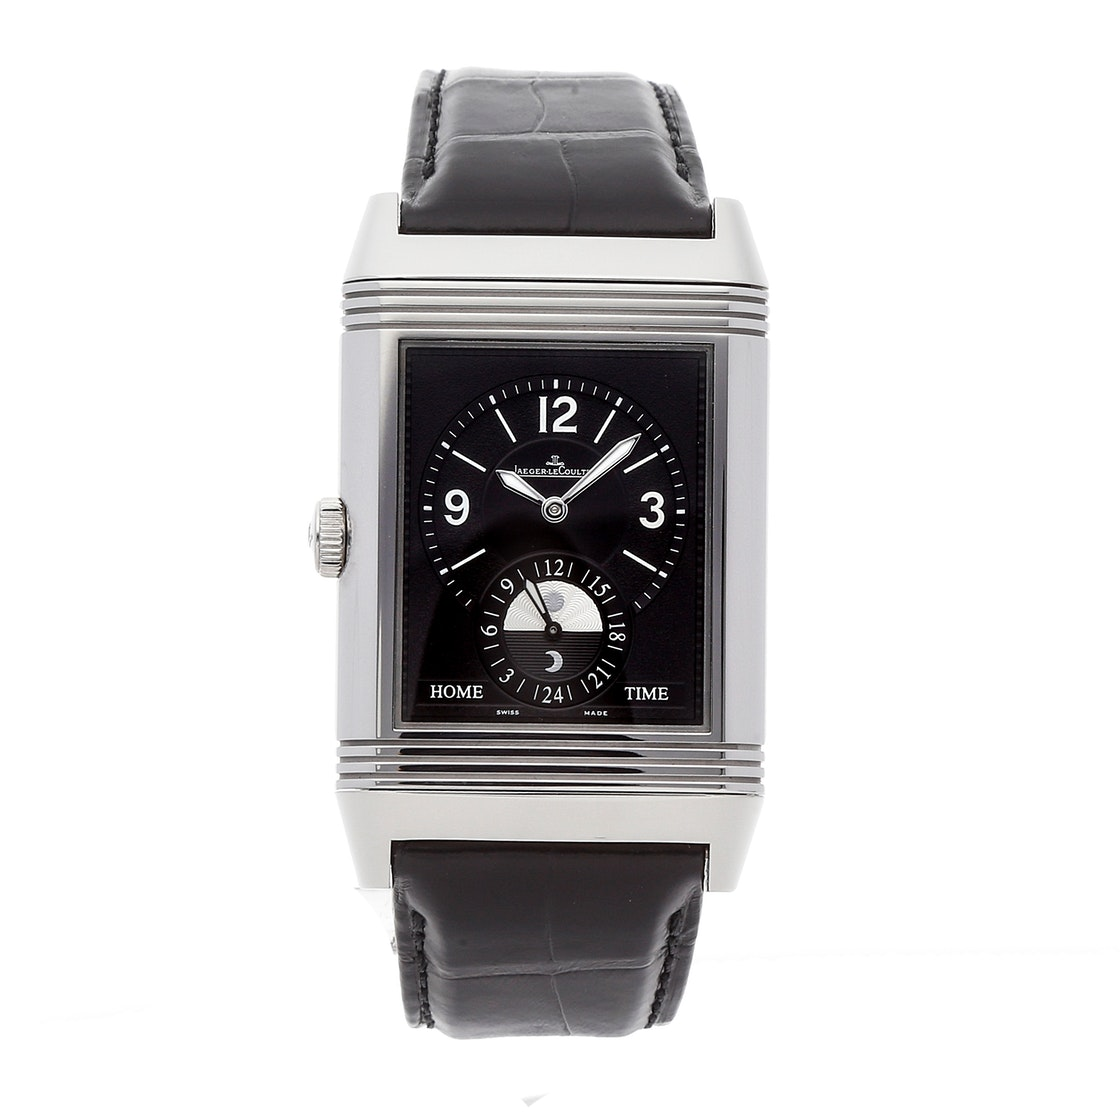 Jaeger-LeCoultre Grande Reverso Duo Limited Edition Q3748420